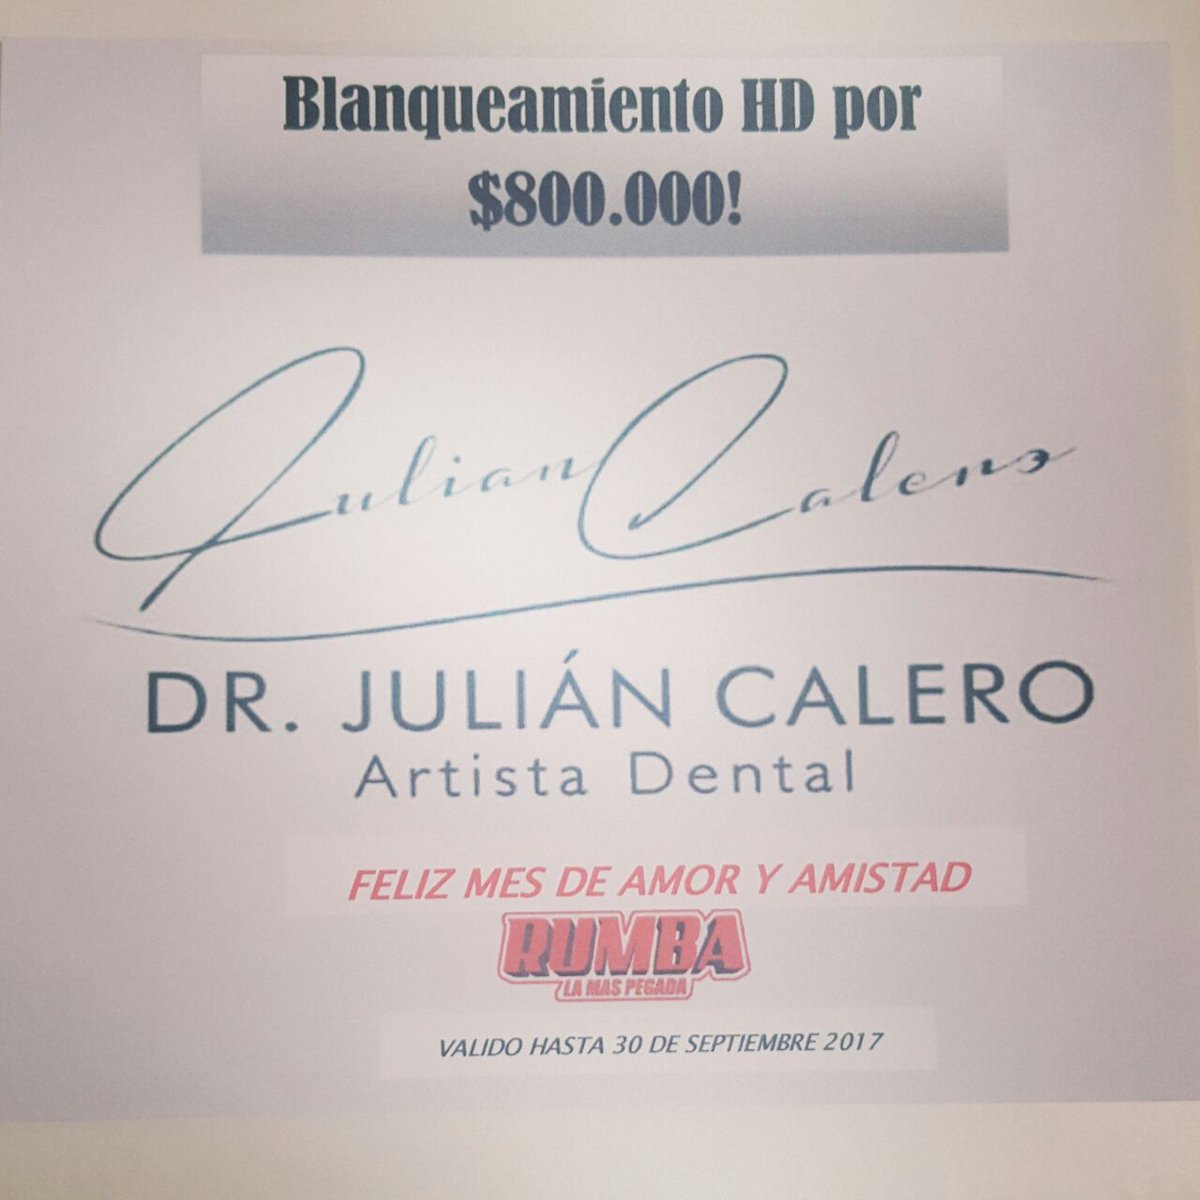 Arte Dental Tulua Especialdeamoryamistad Hashtag On Twitter